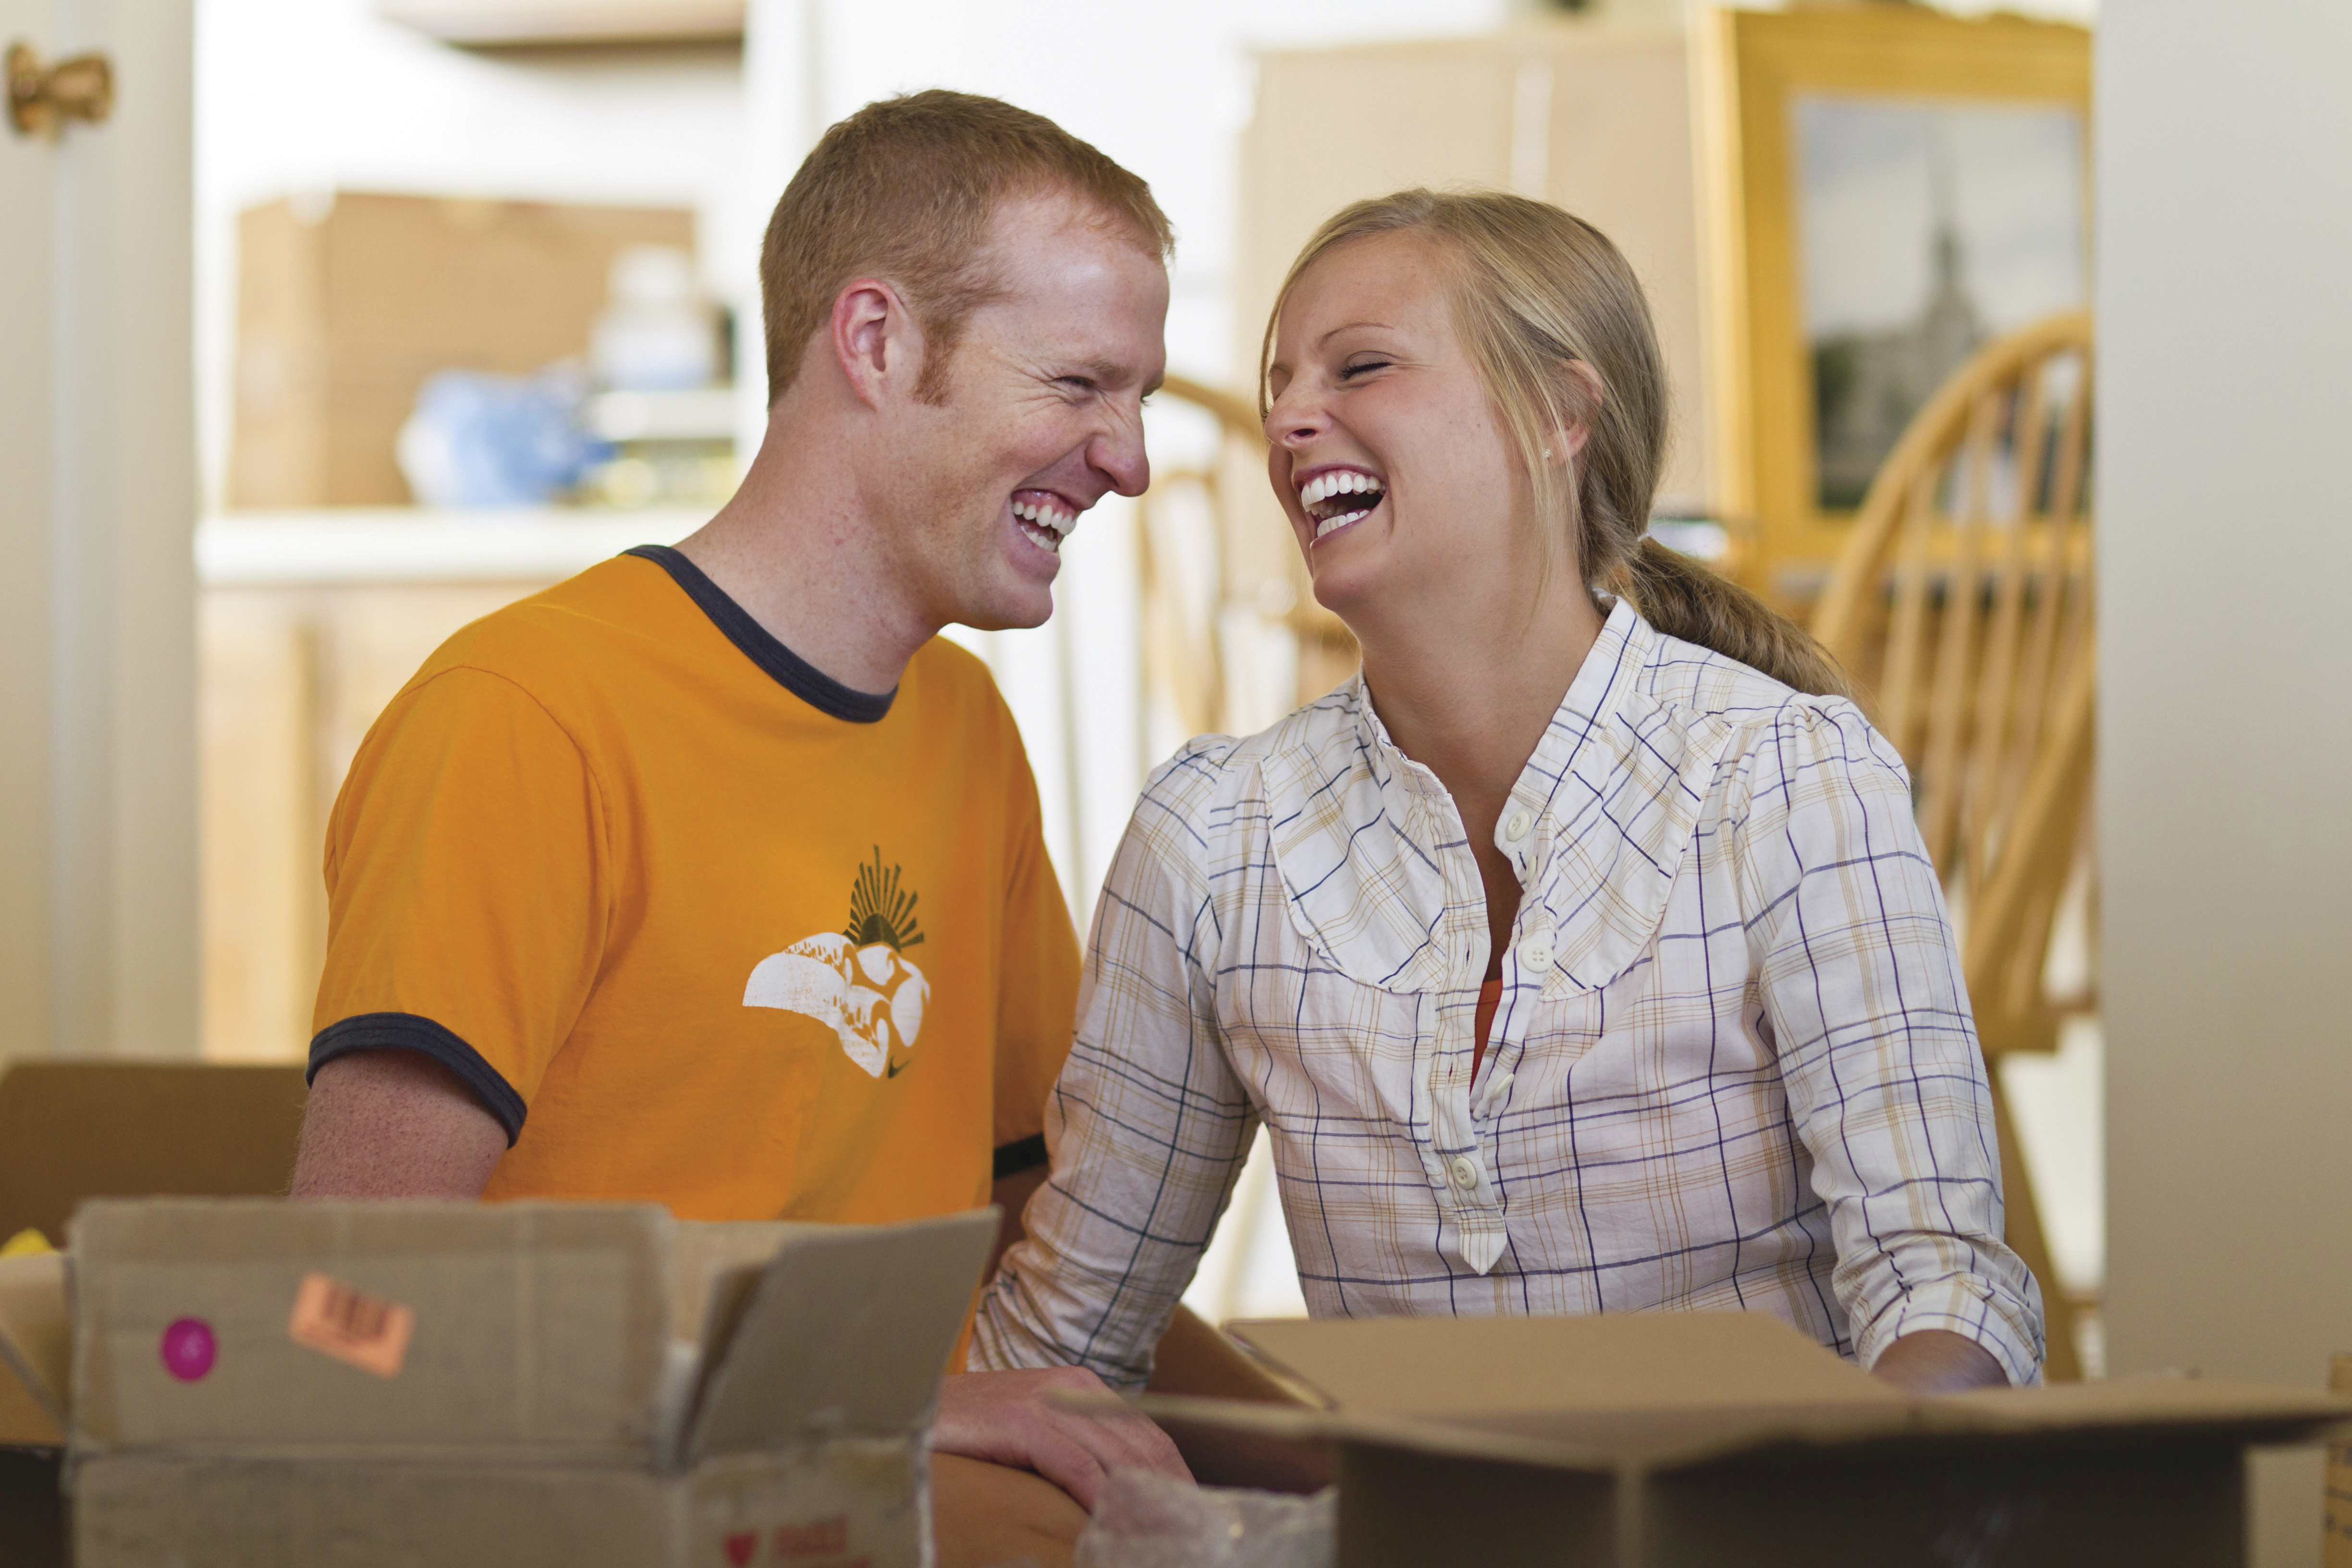 A newlywed couple moves into a new home.